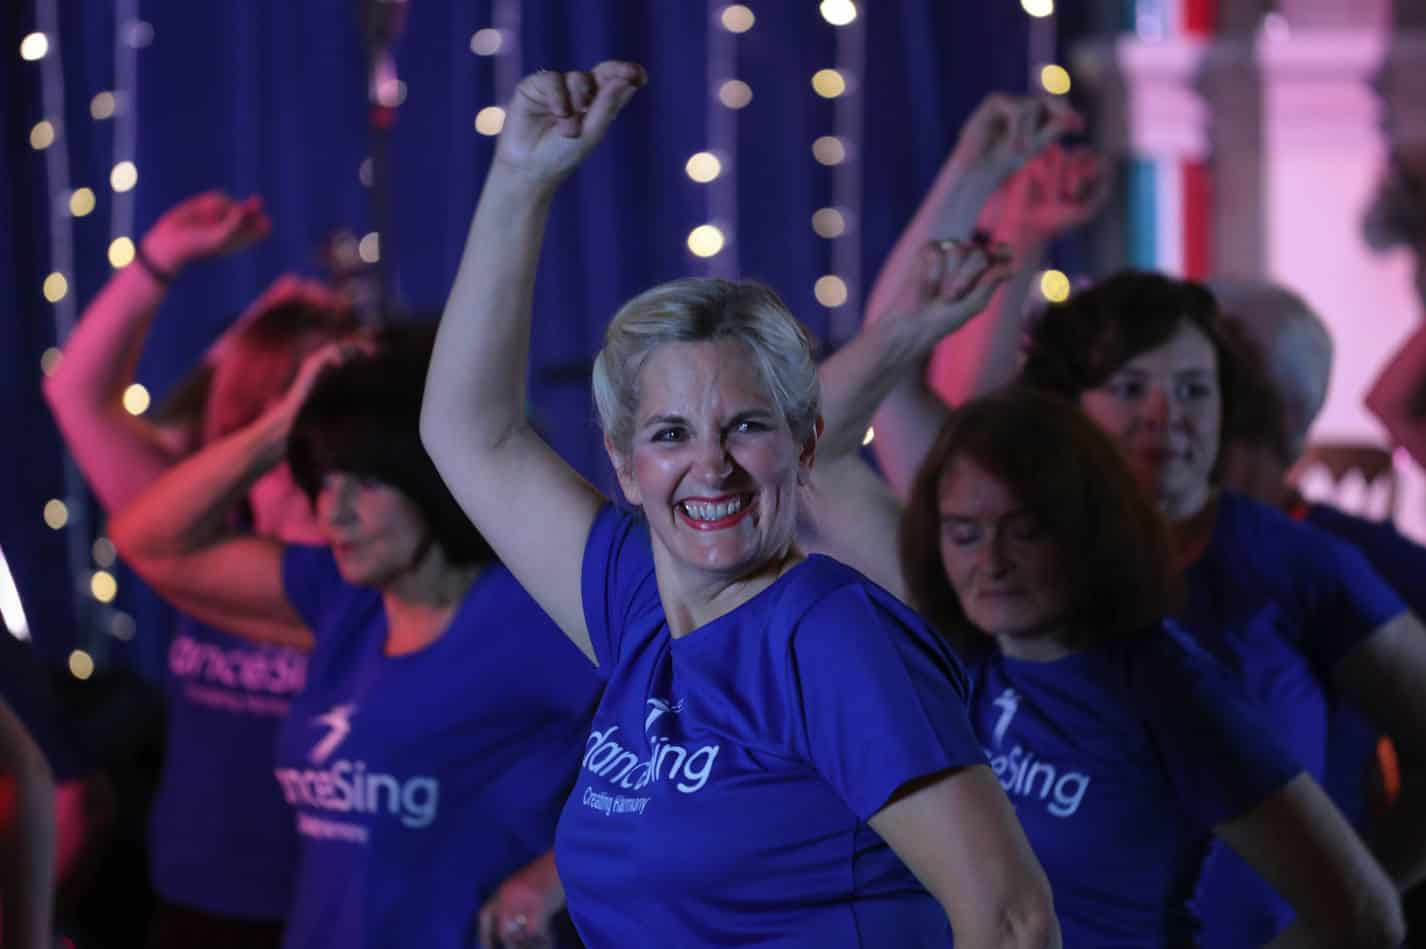 danceSing is coming soon to Newton Mearns